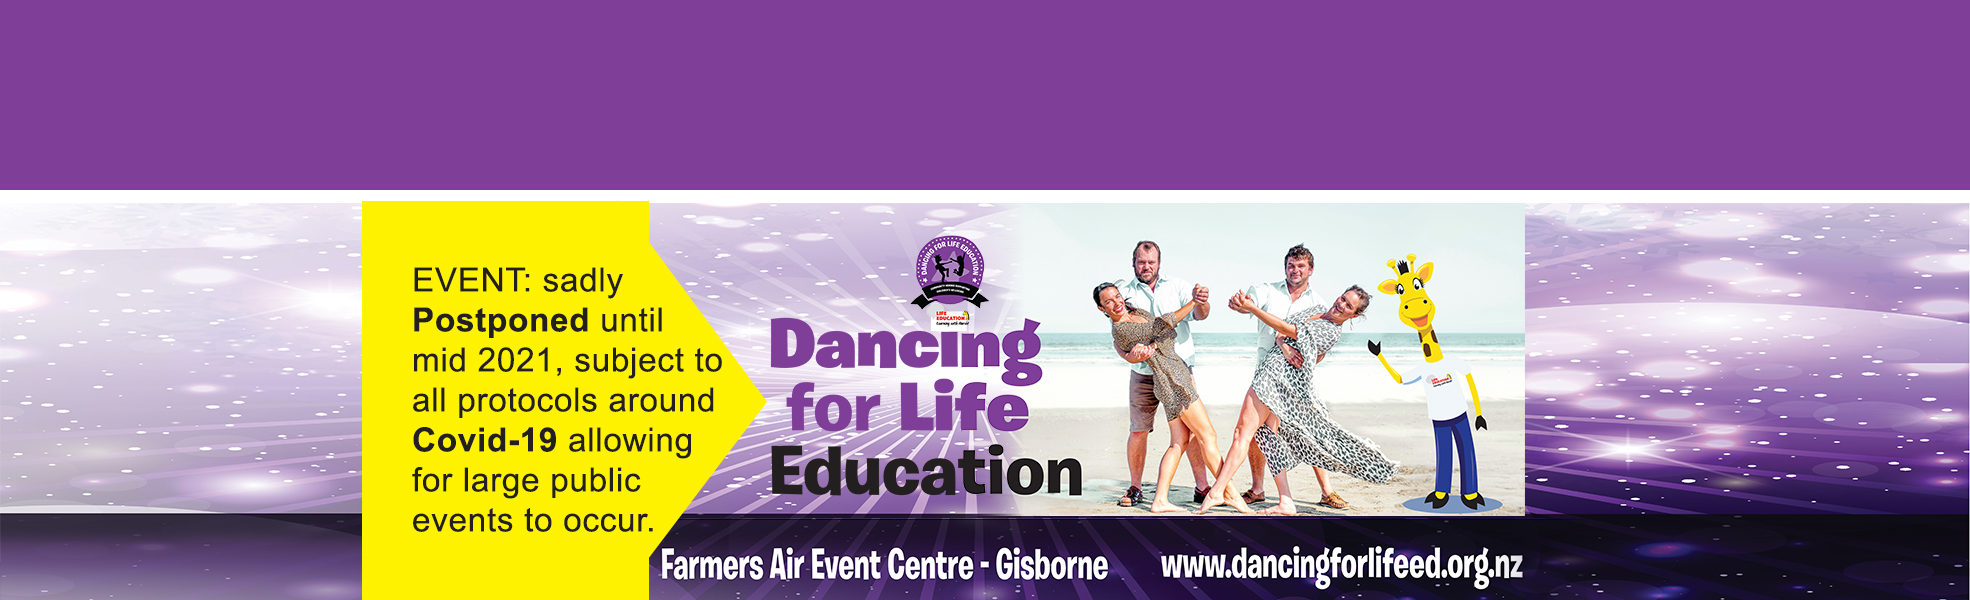 Dancing for Life Education Banner 1970 x 600 Postponed4